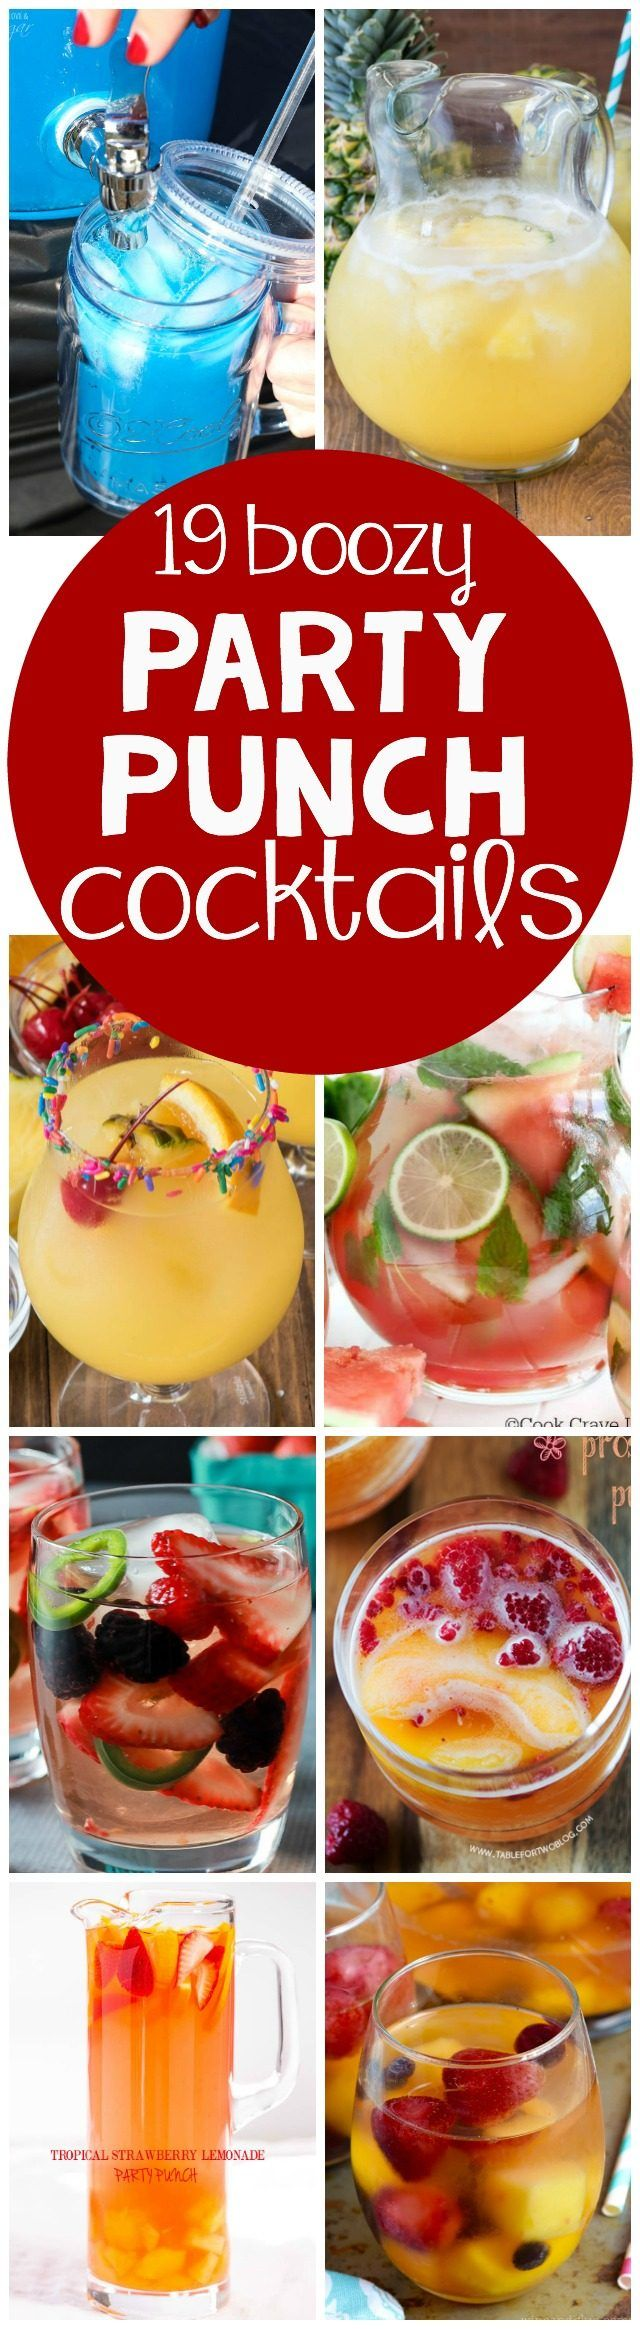 19 Party Punch Cocktail Recipes